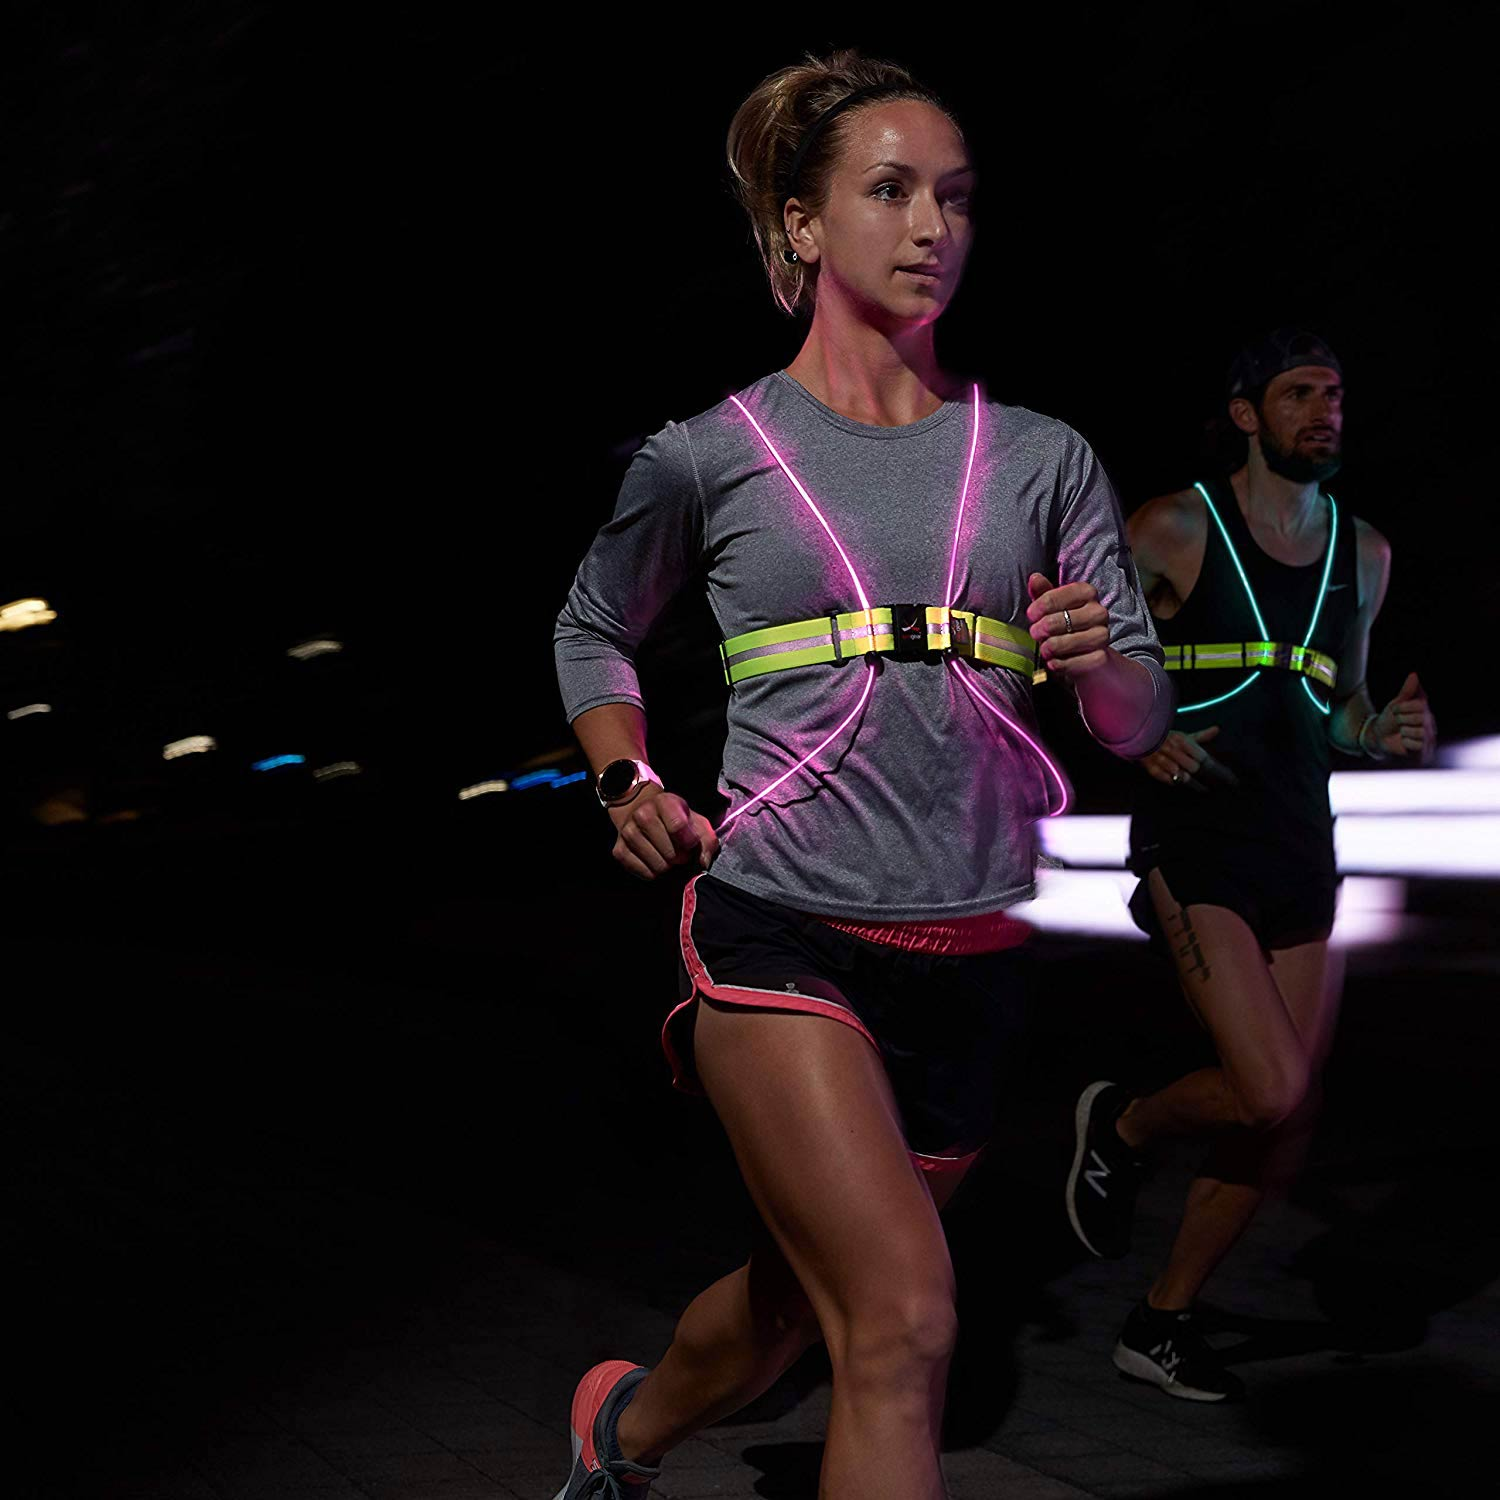 Women running at night with neon reflective vest